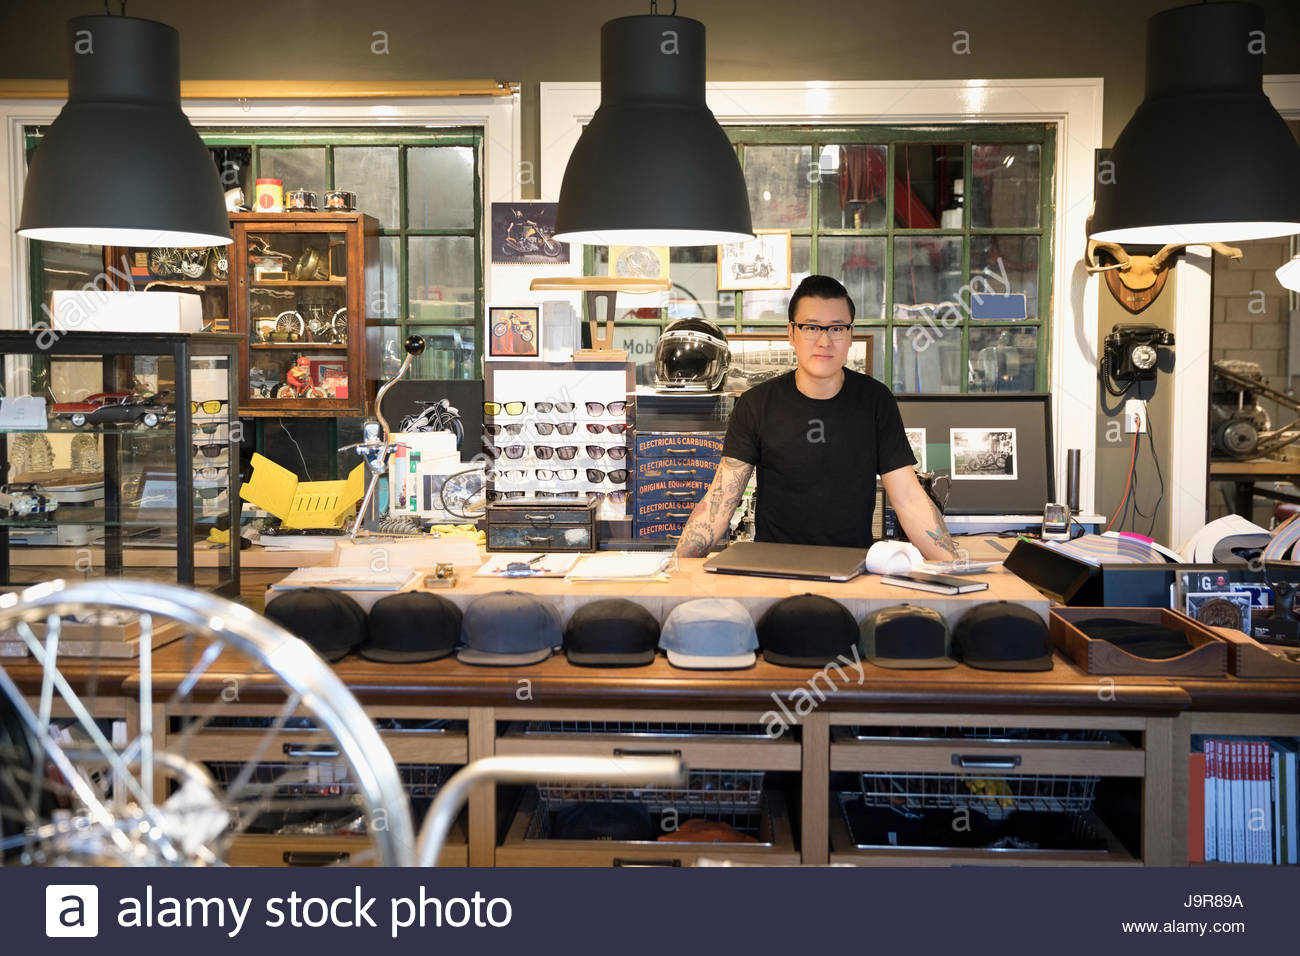 Portrait motorcycle shop owner behind counter - Stock Image